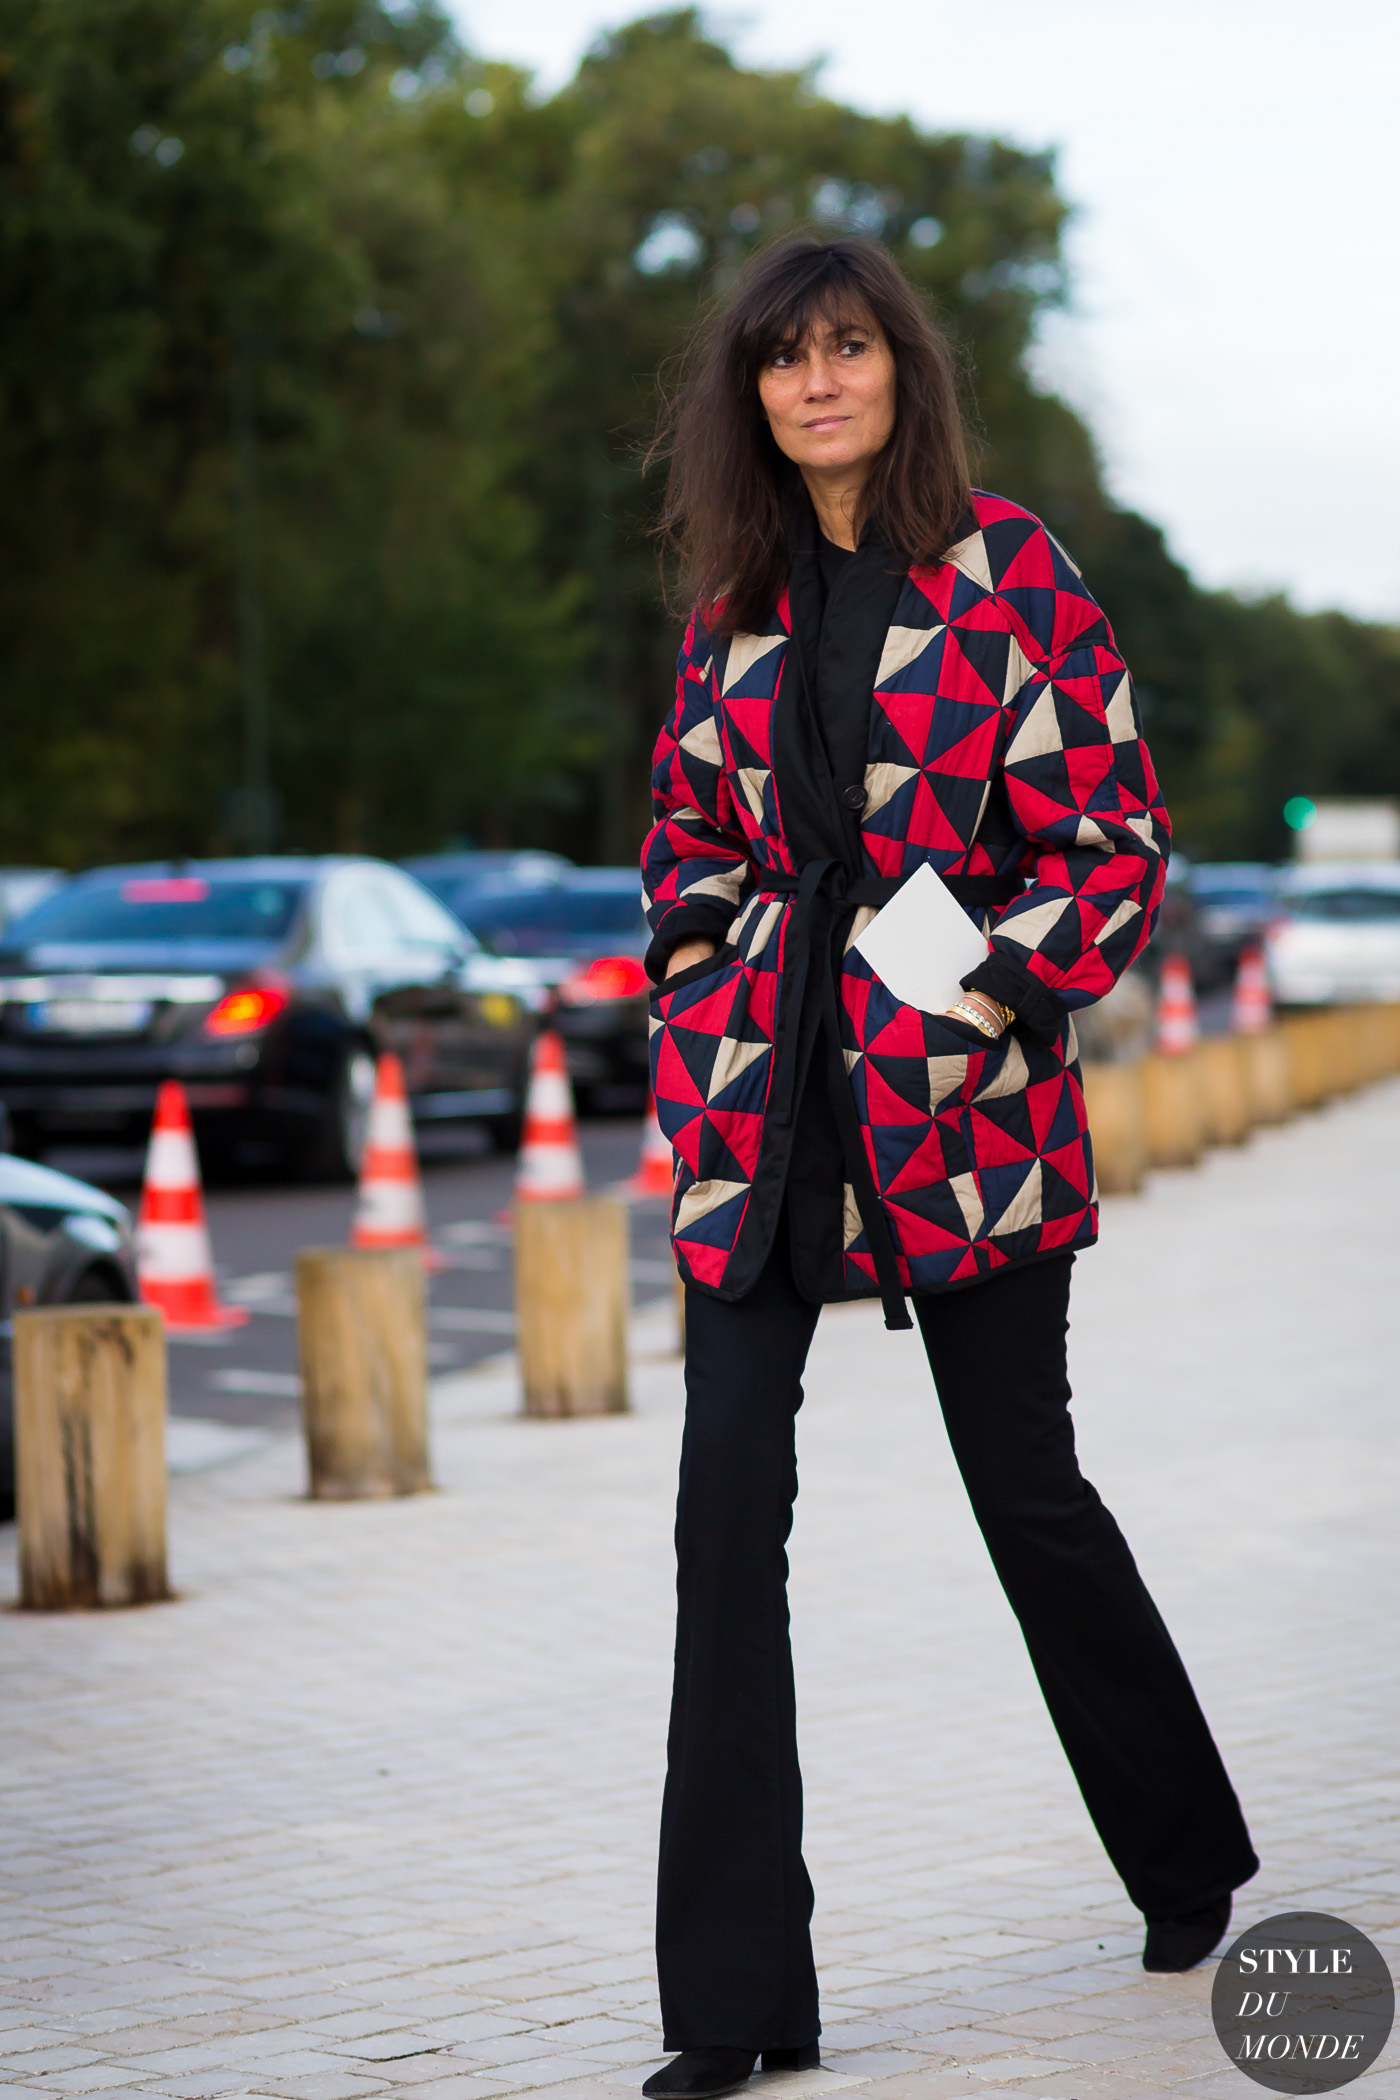 Emmanuelle Alt Street Style Street Fashion Streetsnaps by STYLEDUMONDE Street Style Fashion Photography